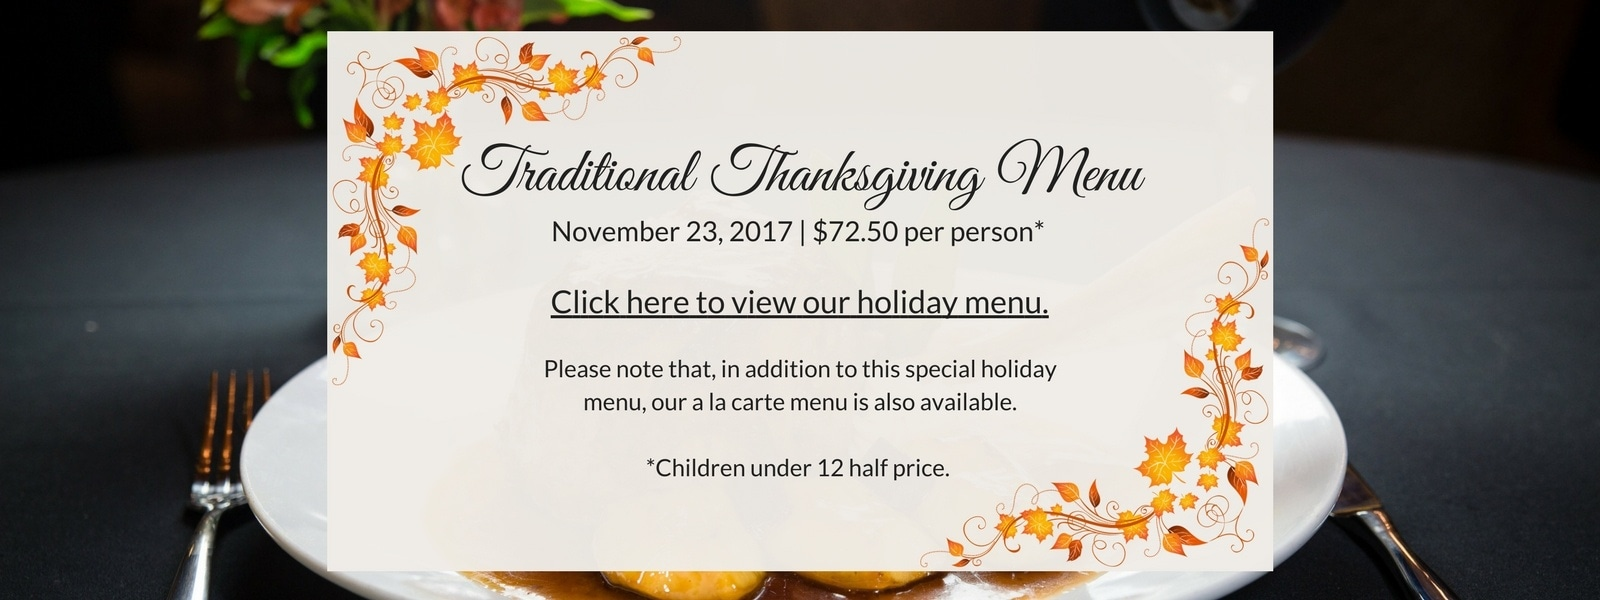 Enjoy a traditional thanksgiving dinner at Christini's